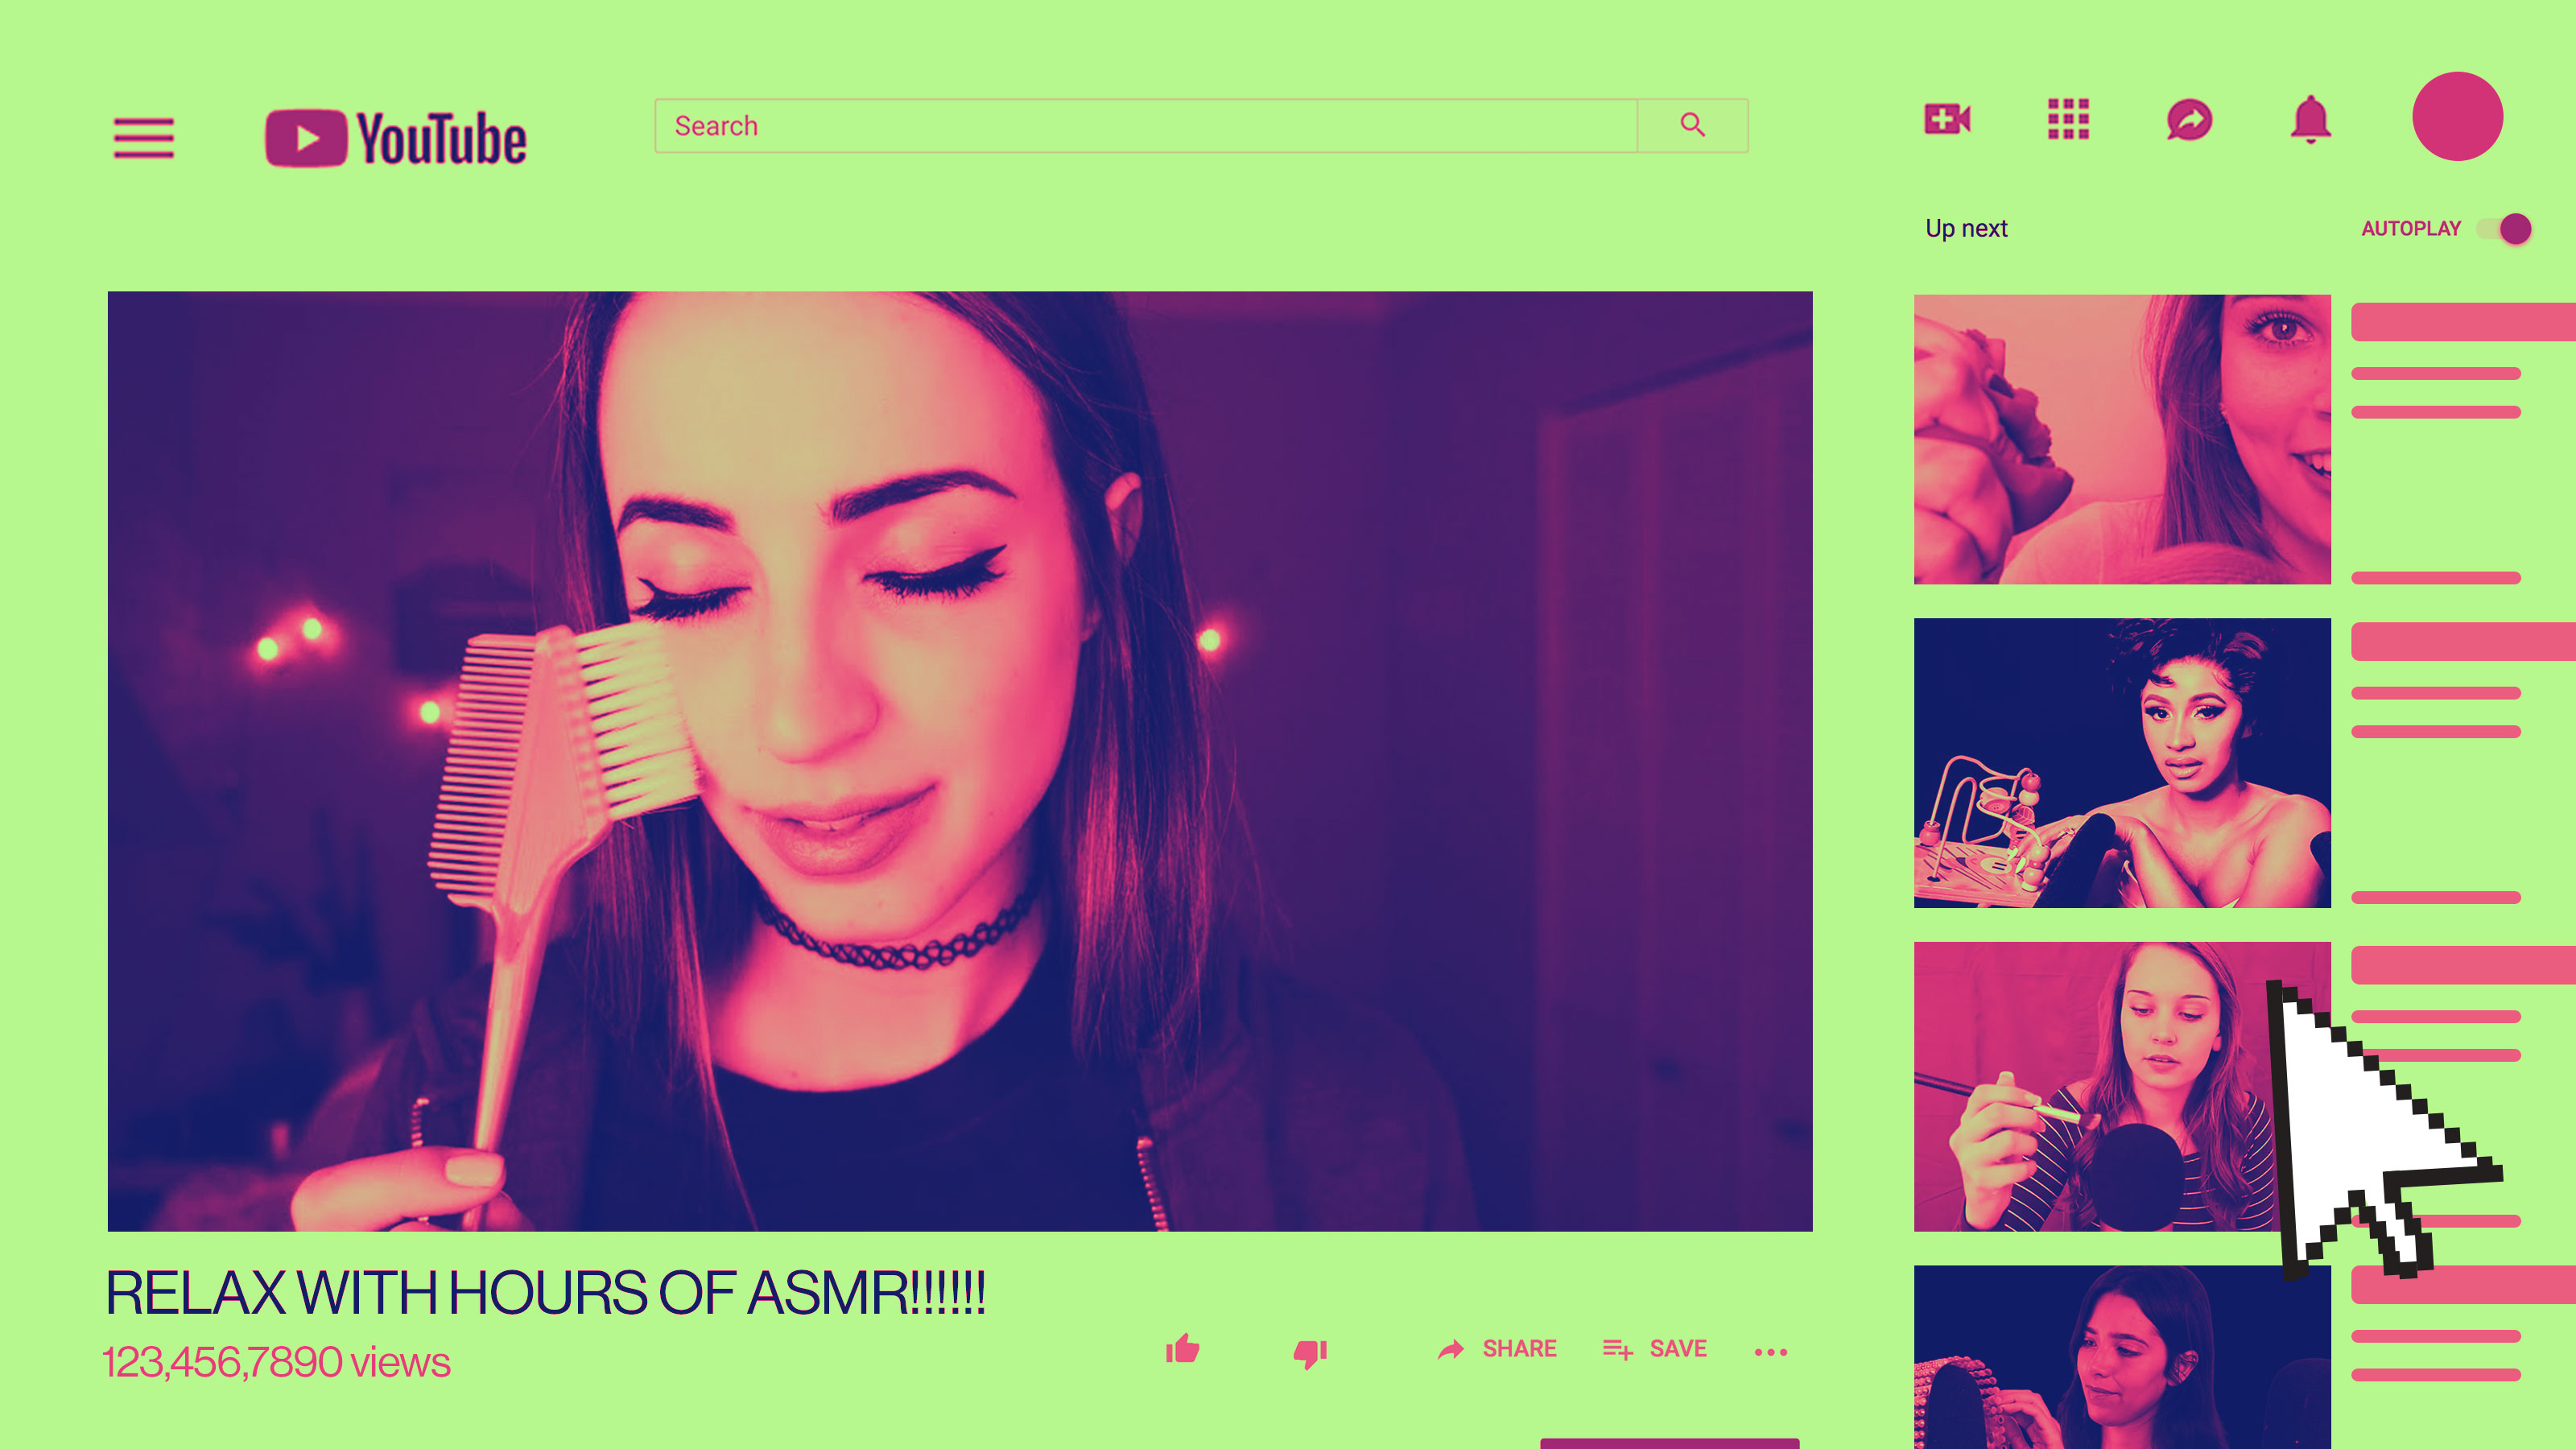 Illustration showing YouTube interface with ASMR videos